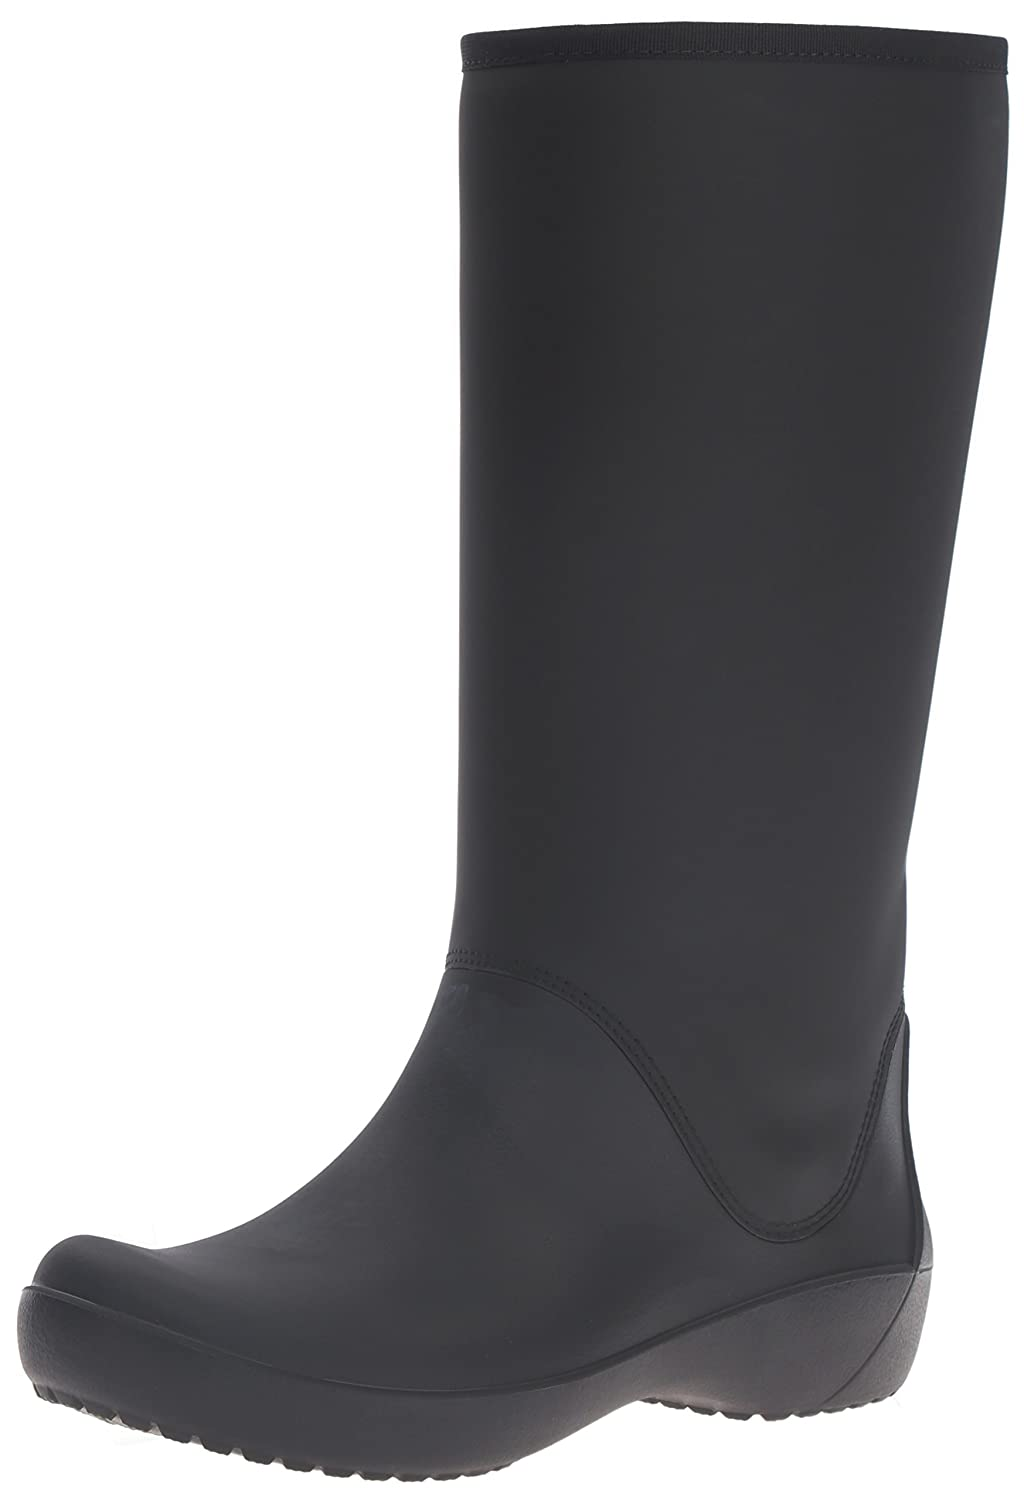 Crocs Women's Rain Floe Tall Boot B01A6LK1TM 7 M US|Black